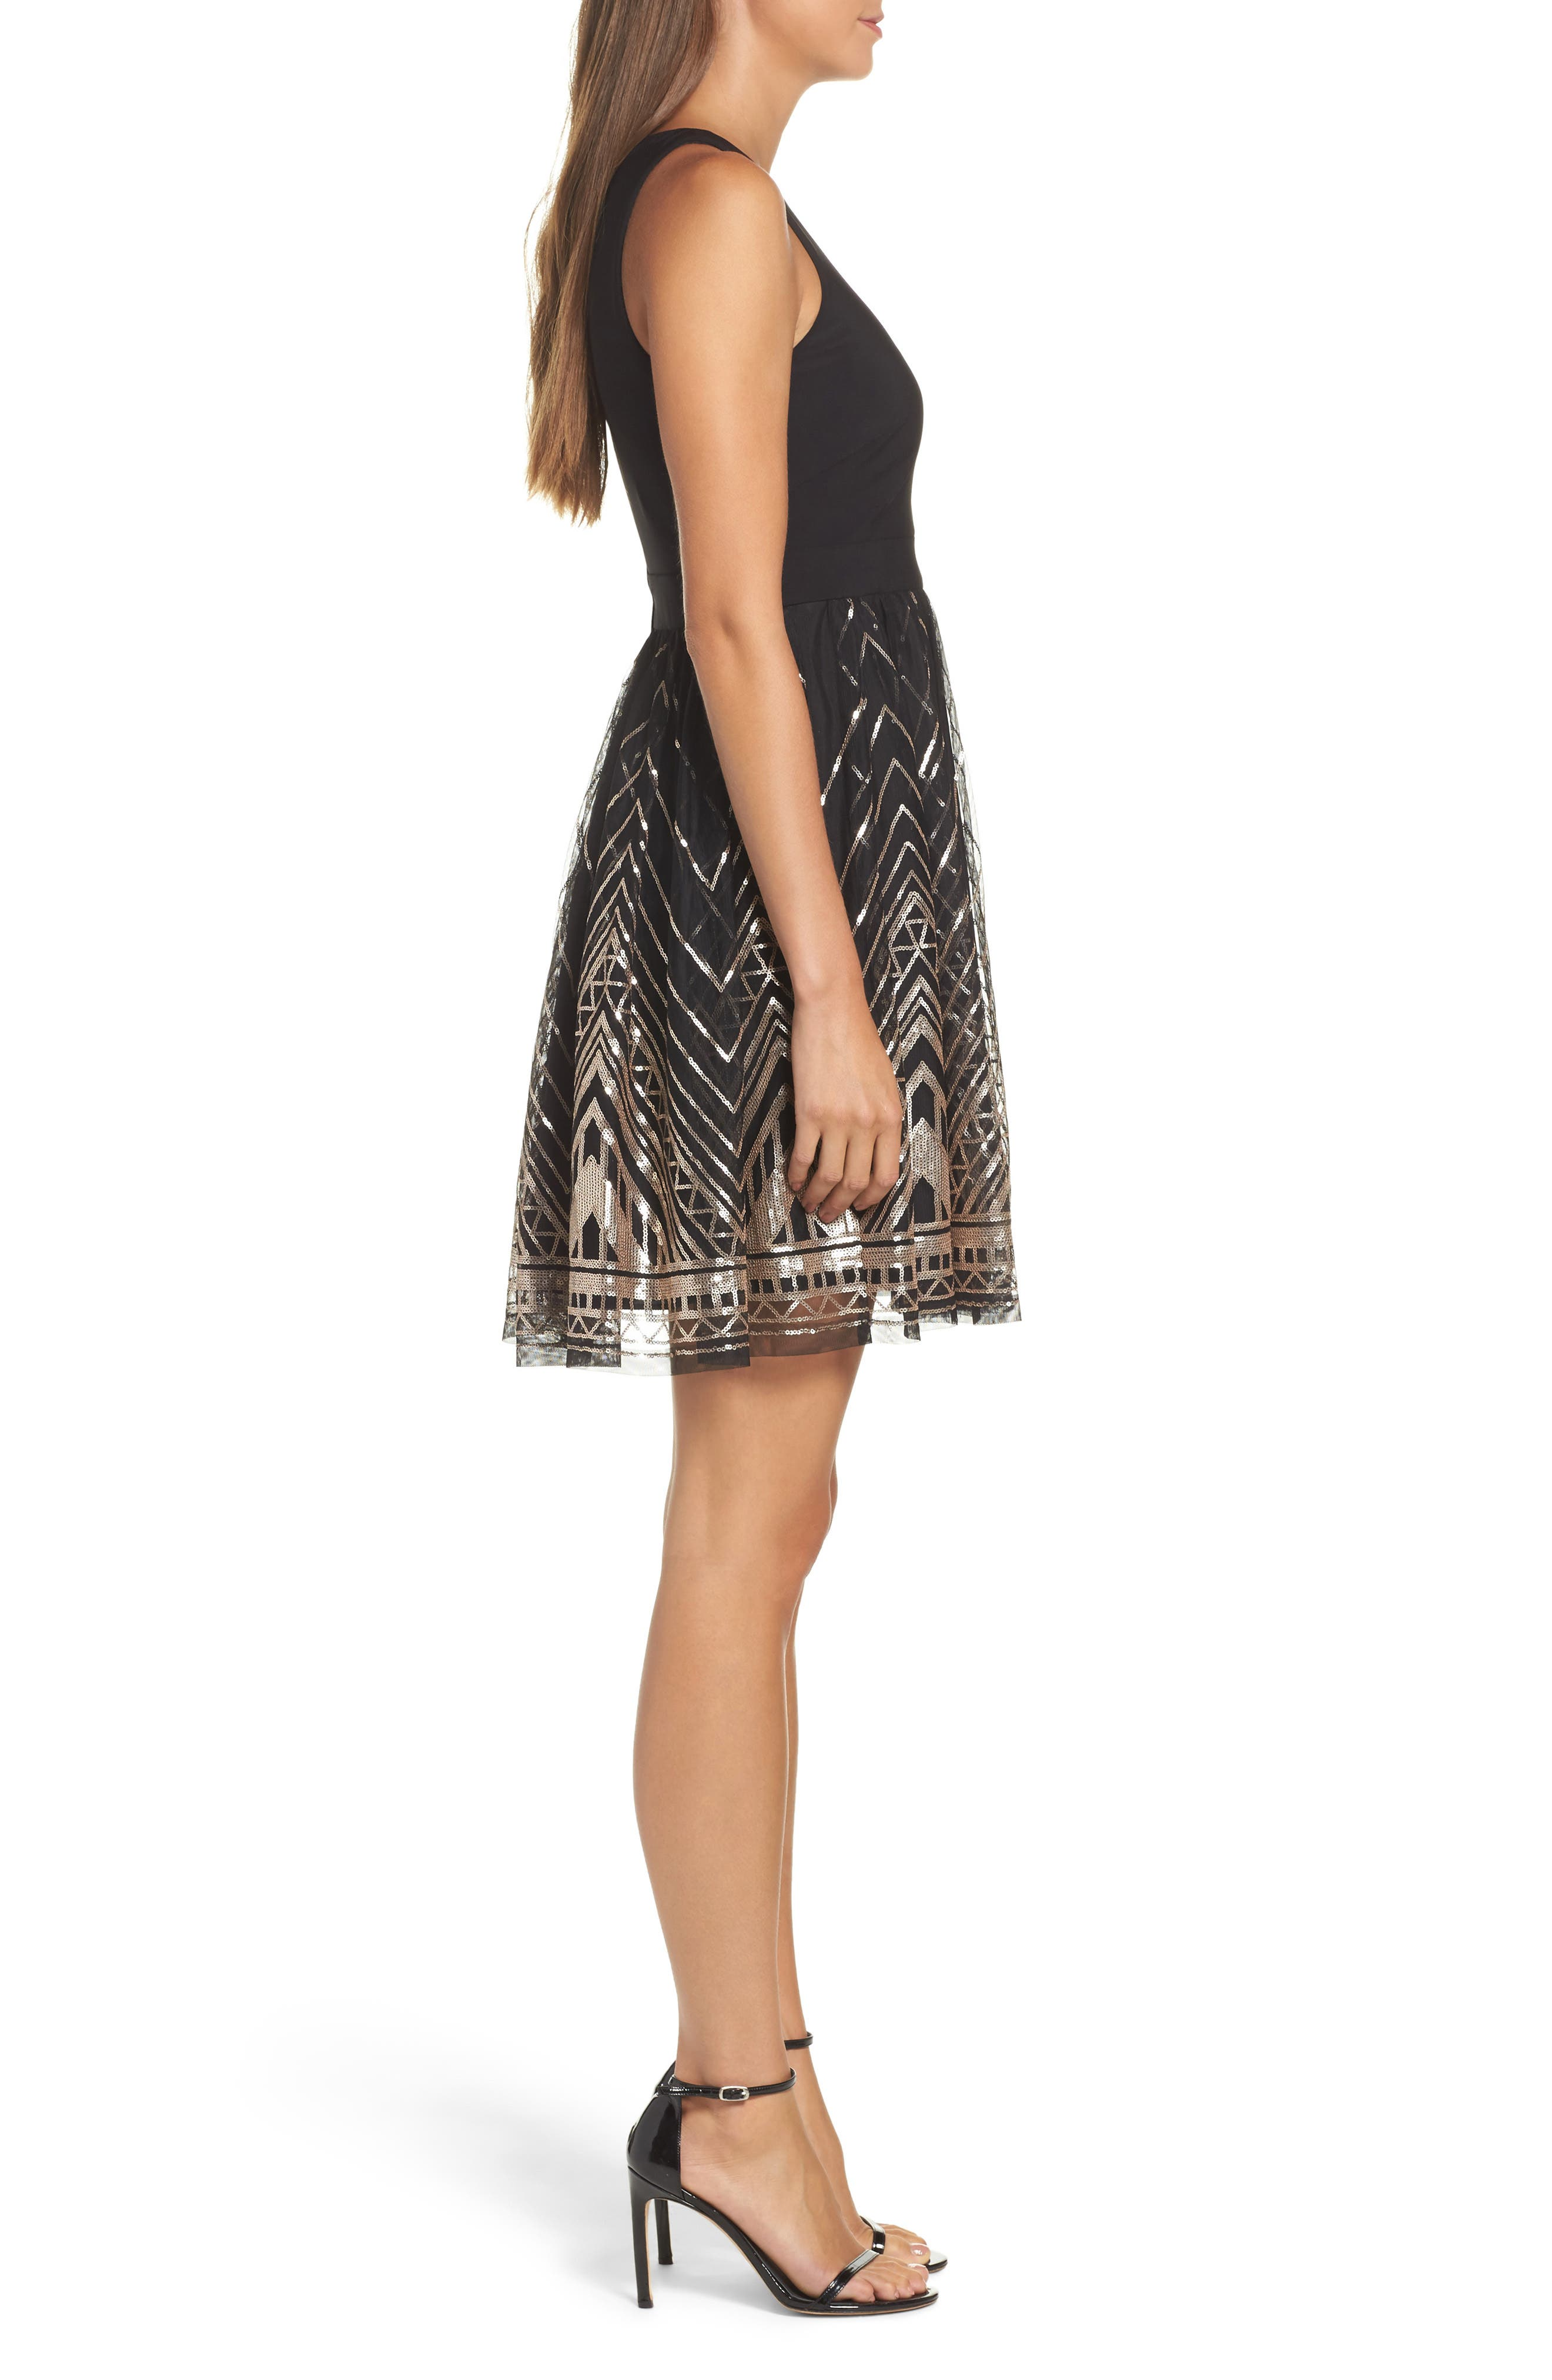 VINCE CAMUTO, Sequin Fit & Flare Cocktail Dress, Alternate thumbnail 4, color, BLACK/ GOLD